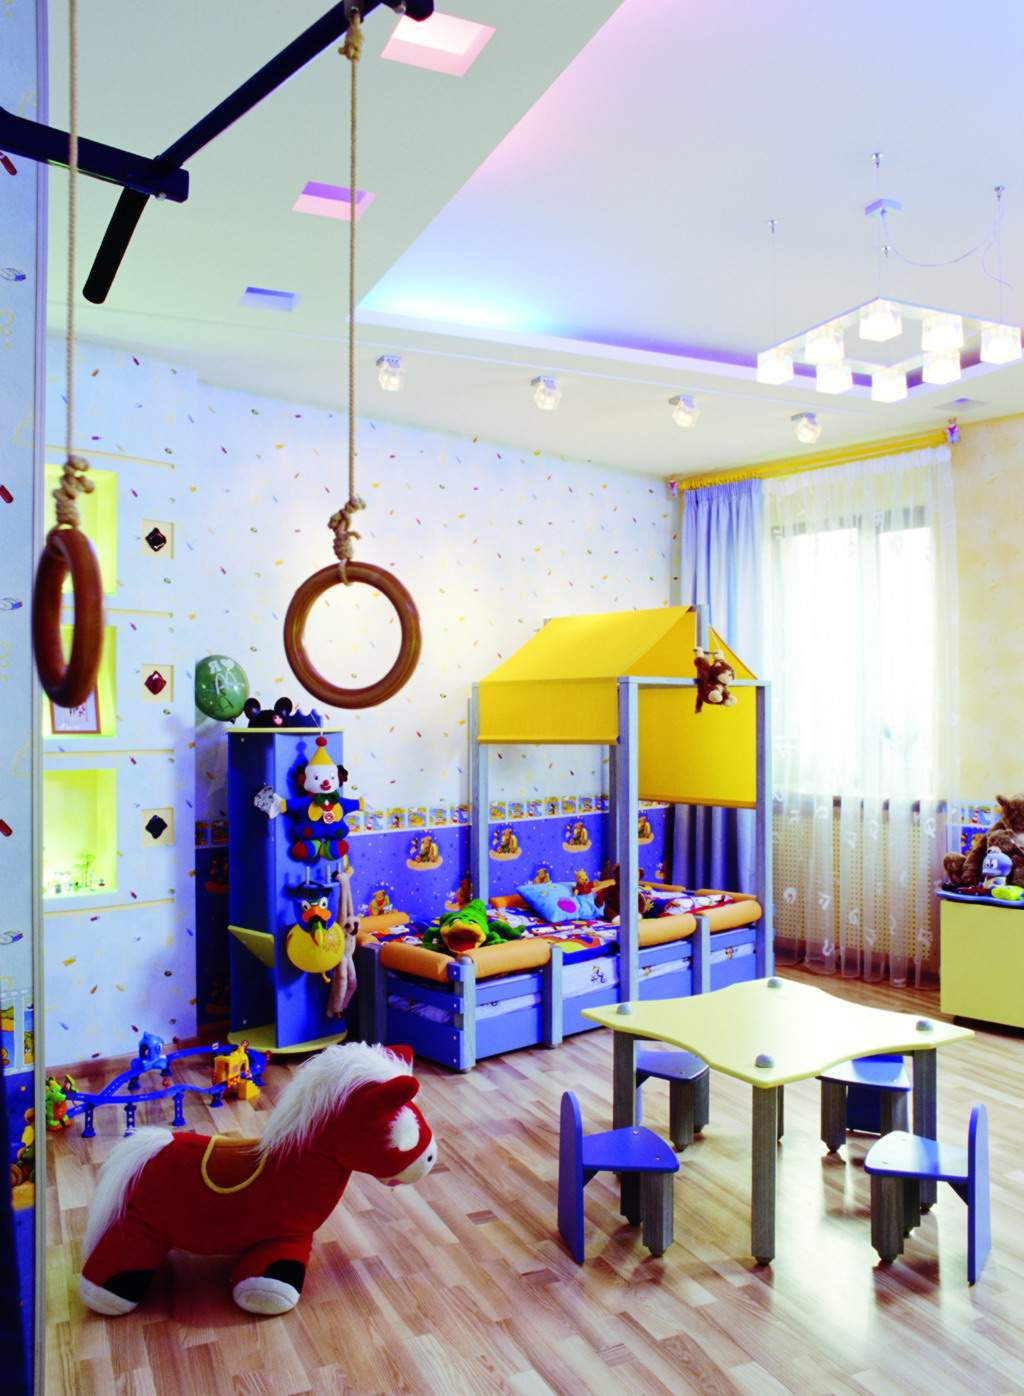 15 creative kids bedroom decorating ideas for Accessories for bedroom ideas